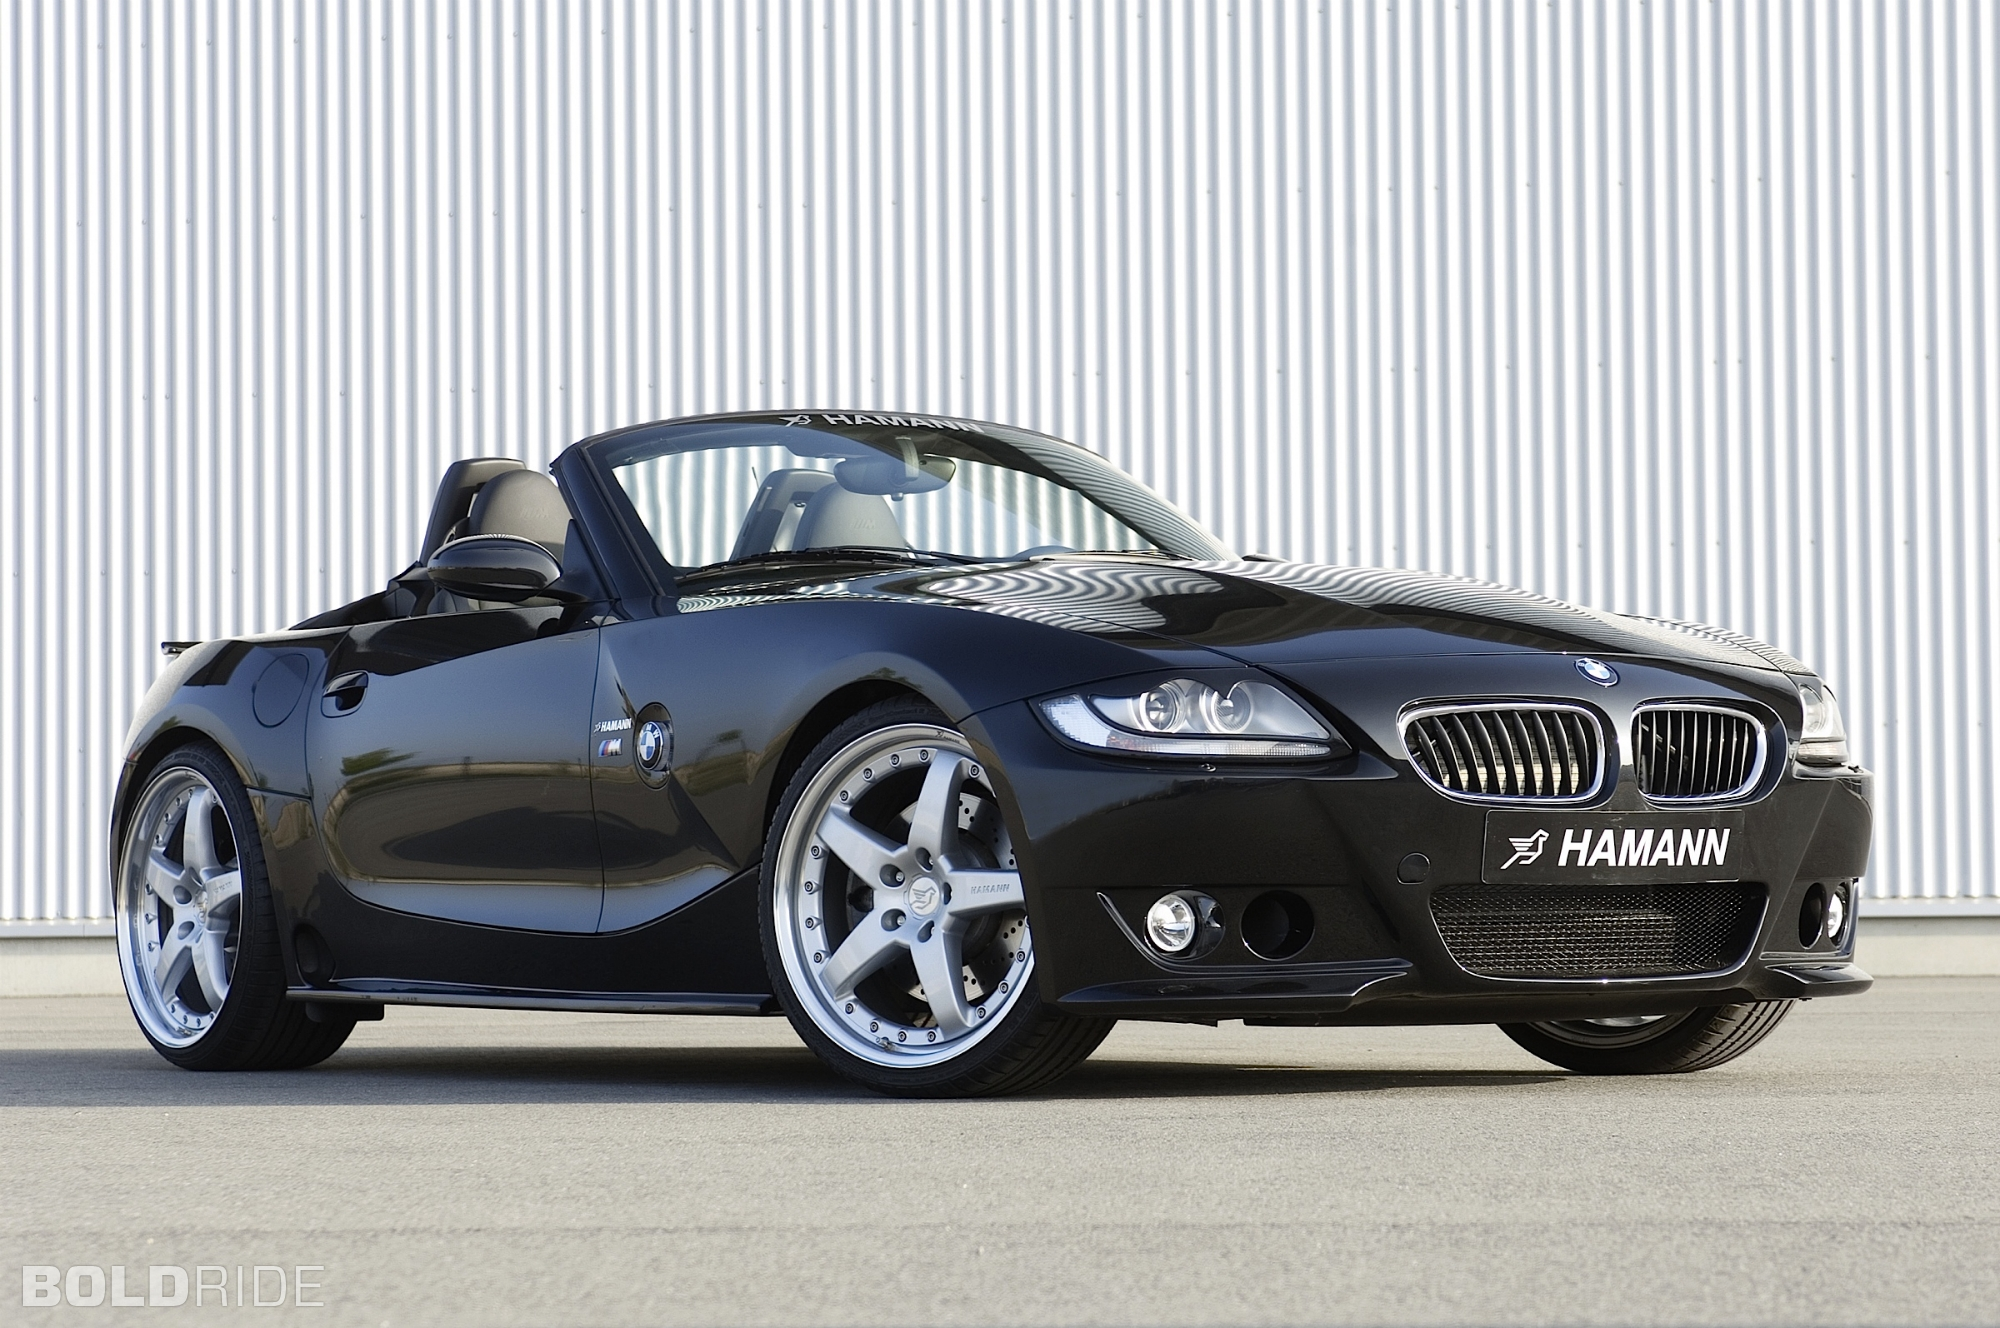 2006 Hamann Bmw Z4 M Coupe Car Photos Catalog 2018